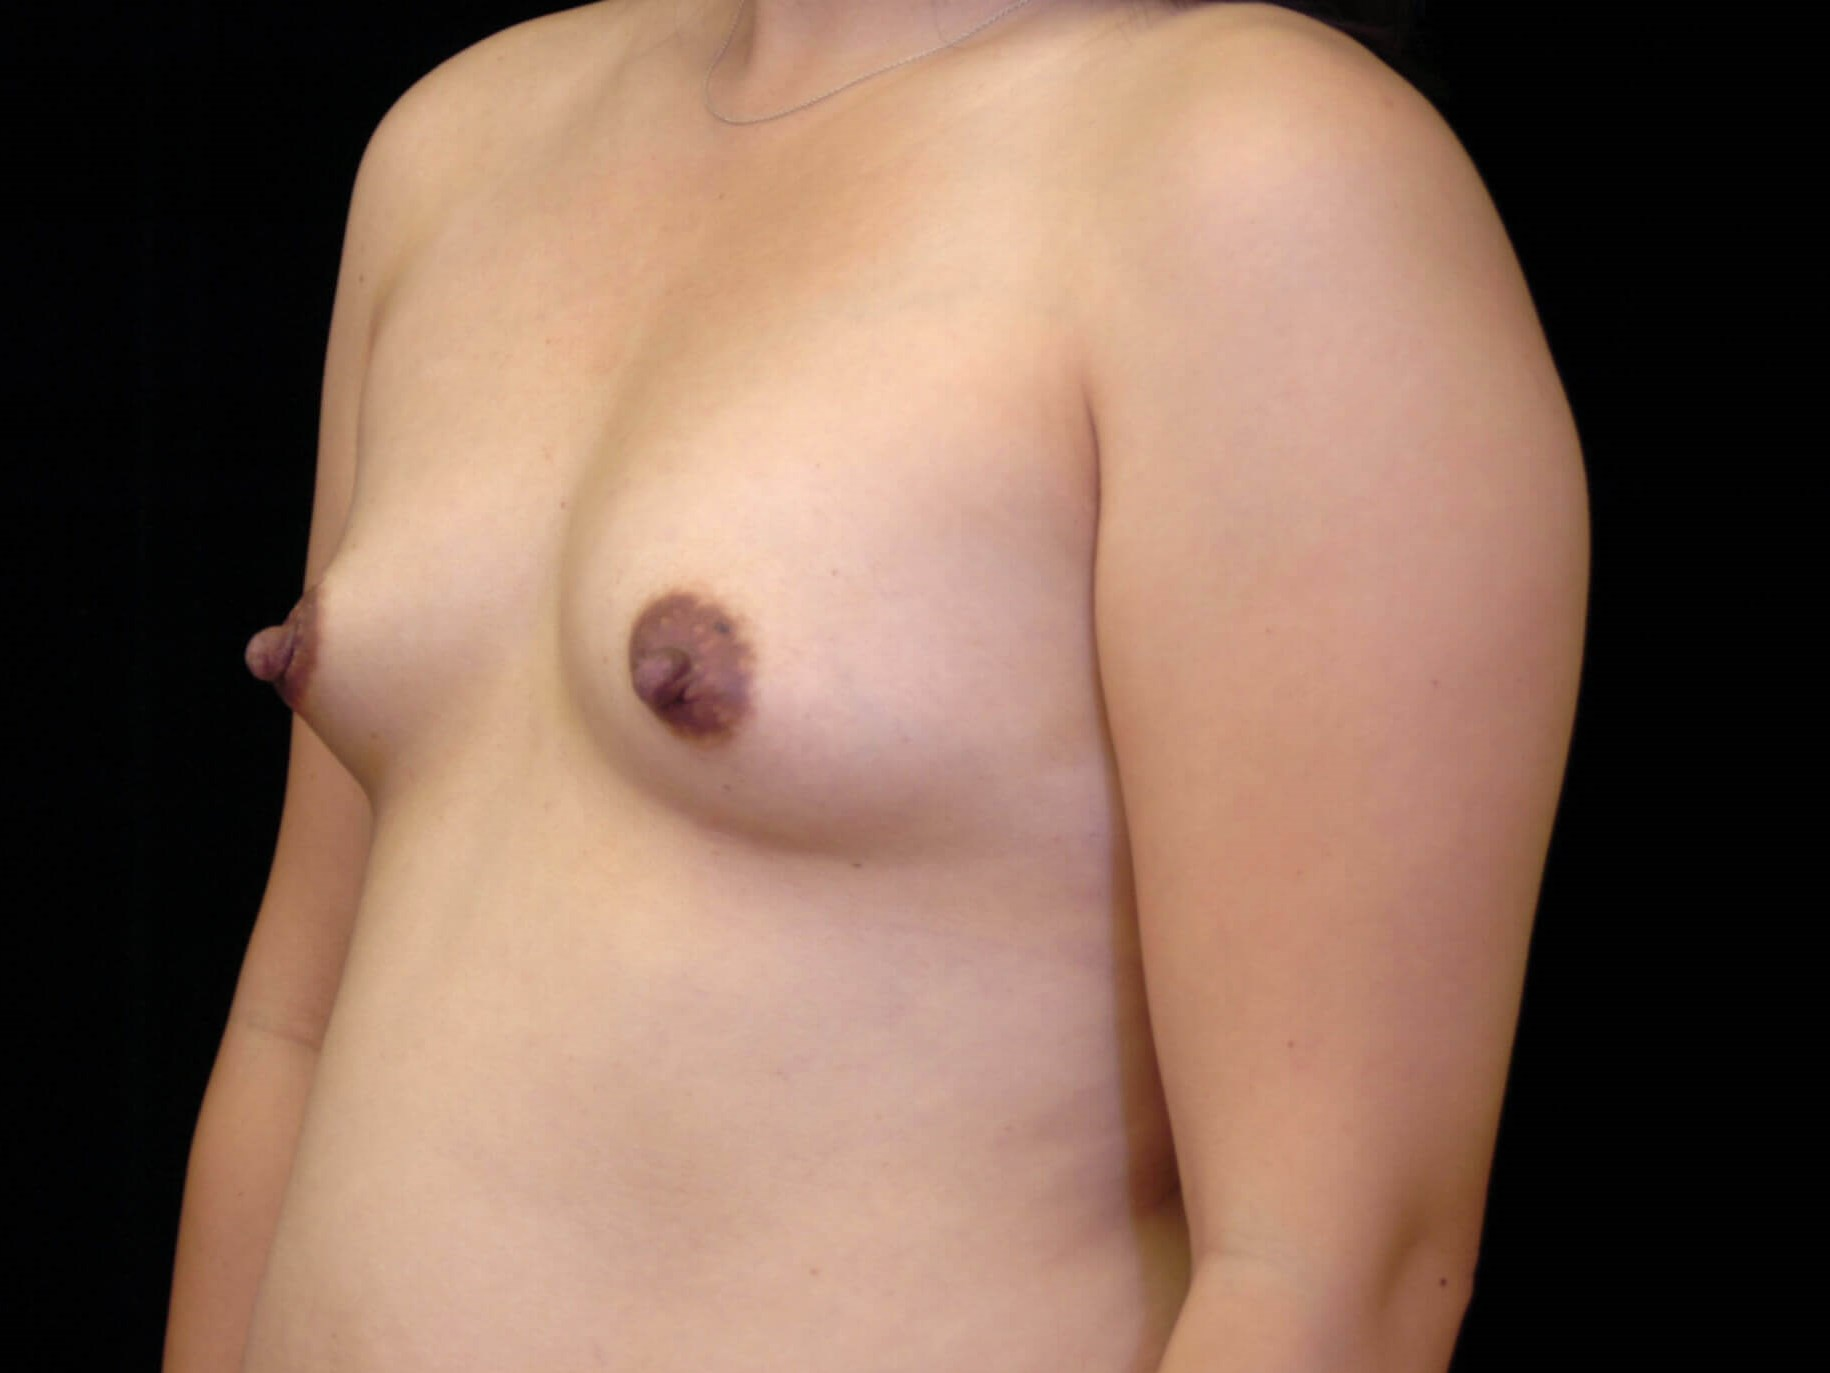 DALLAS, TEXAS WOMAN OPTS FOR SUBTLE BREAST ENHANCEMENT BY HAVING FAT TRANSFER.